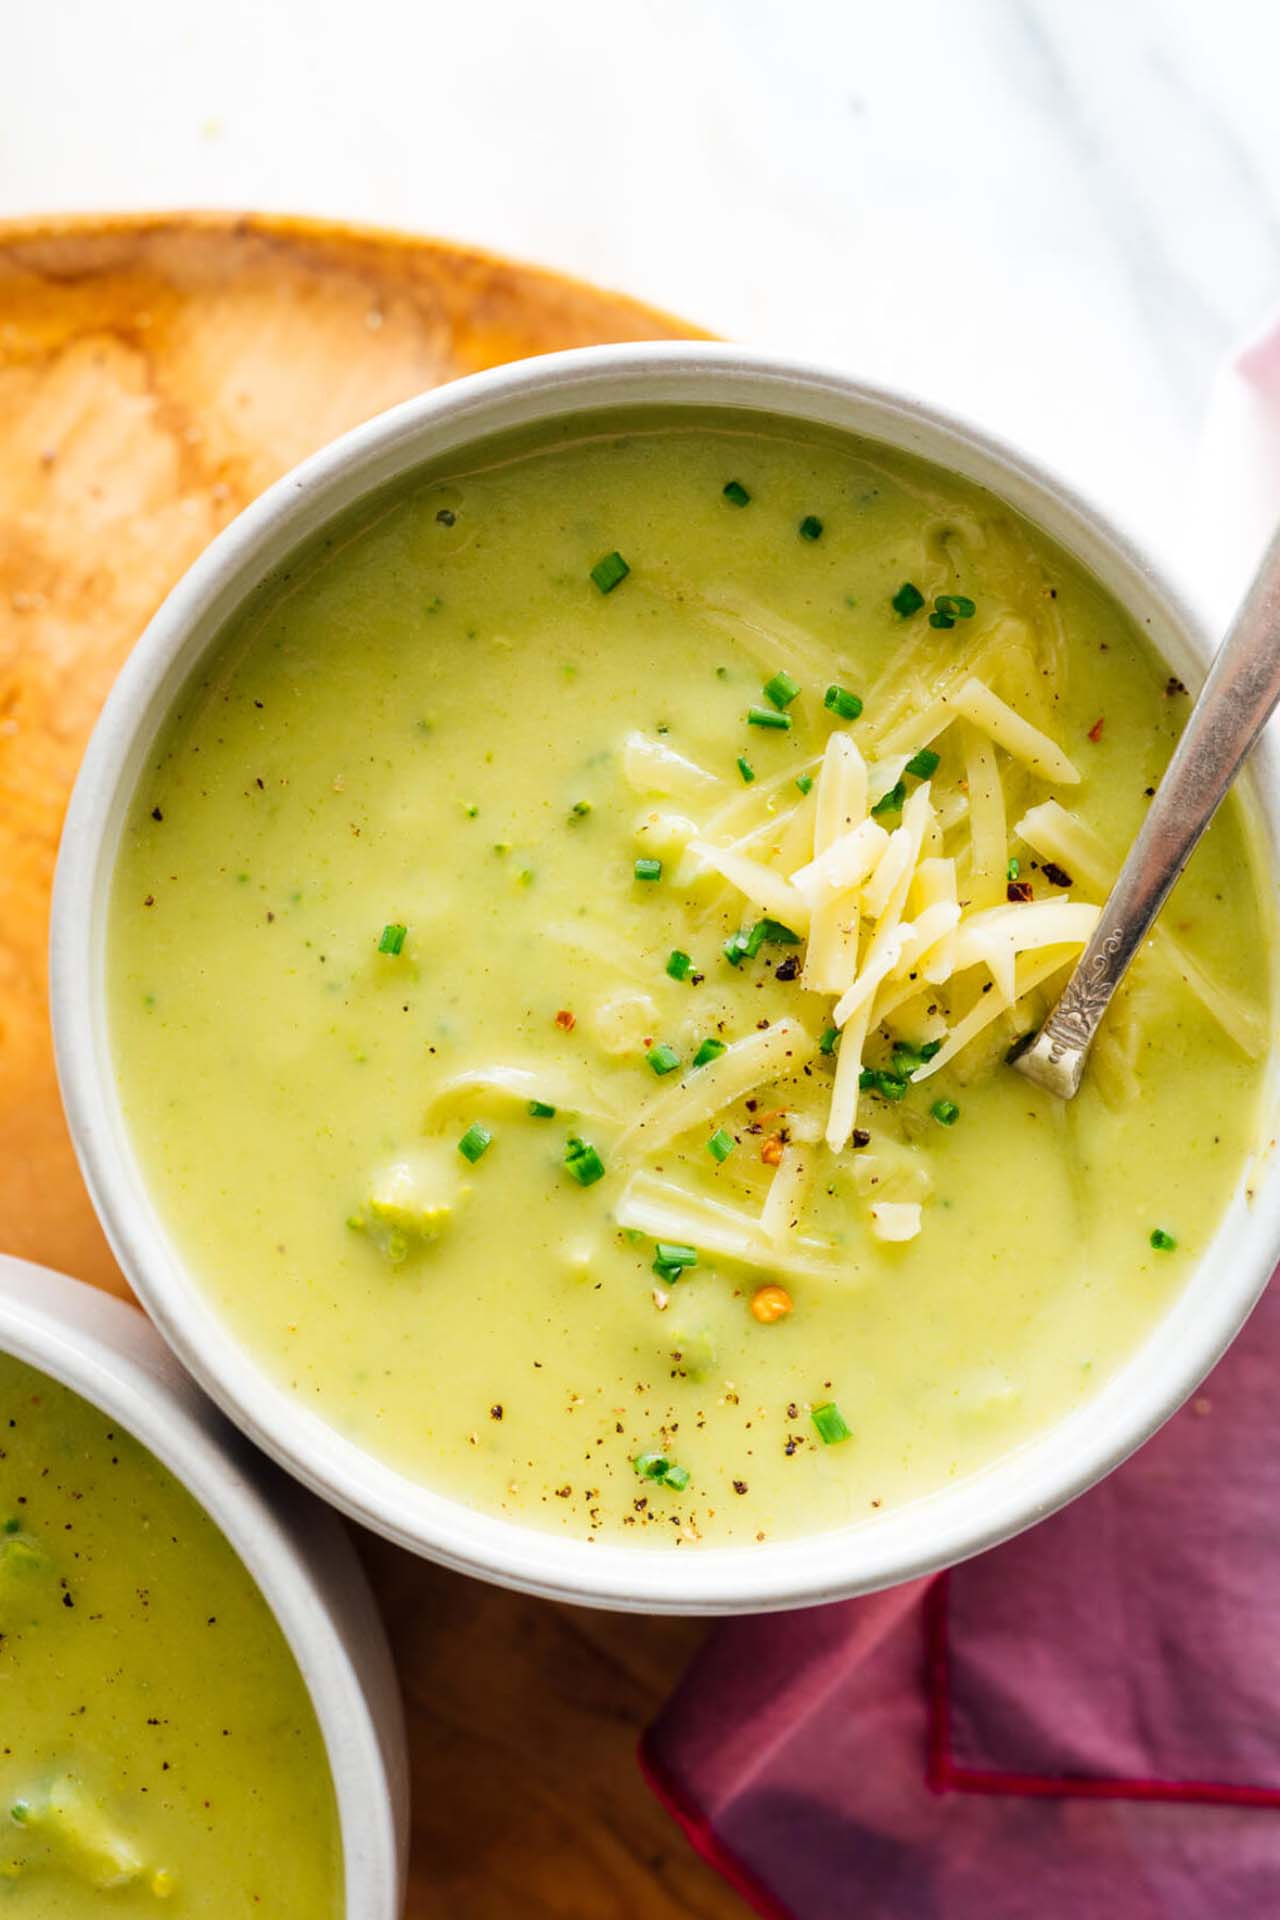 The Ever-Green Soup